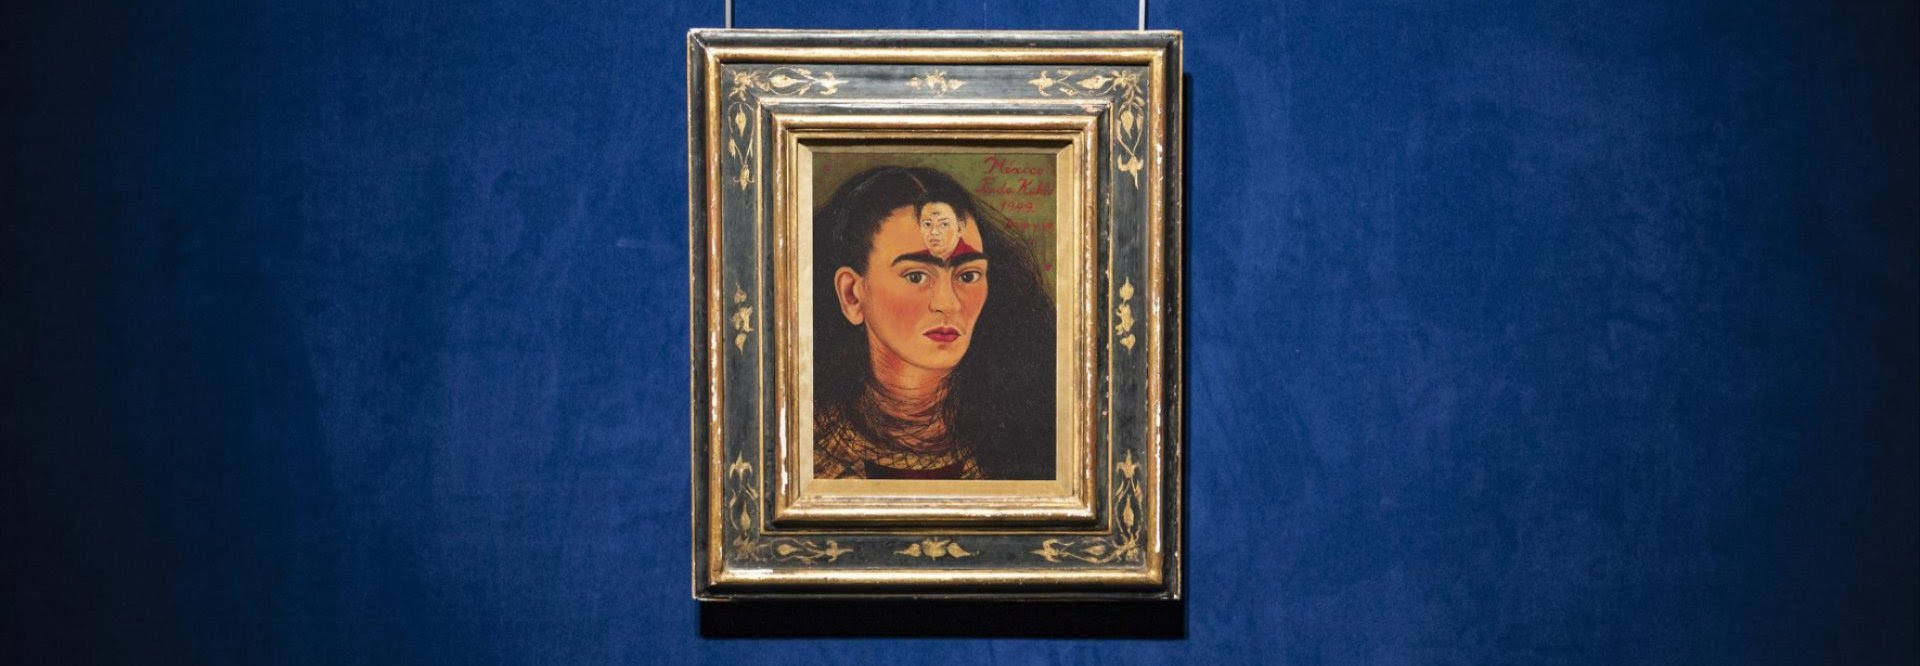 This super-rare Frida Kahlo painting is on display in London, but only for a few days